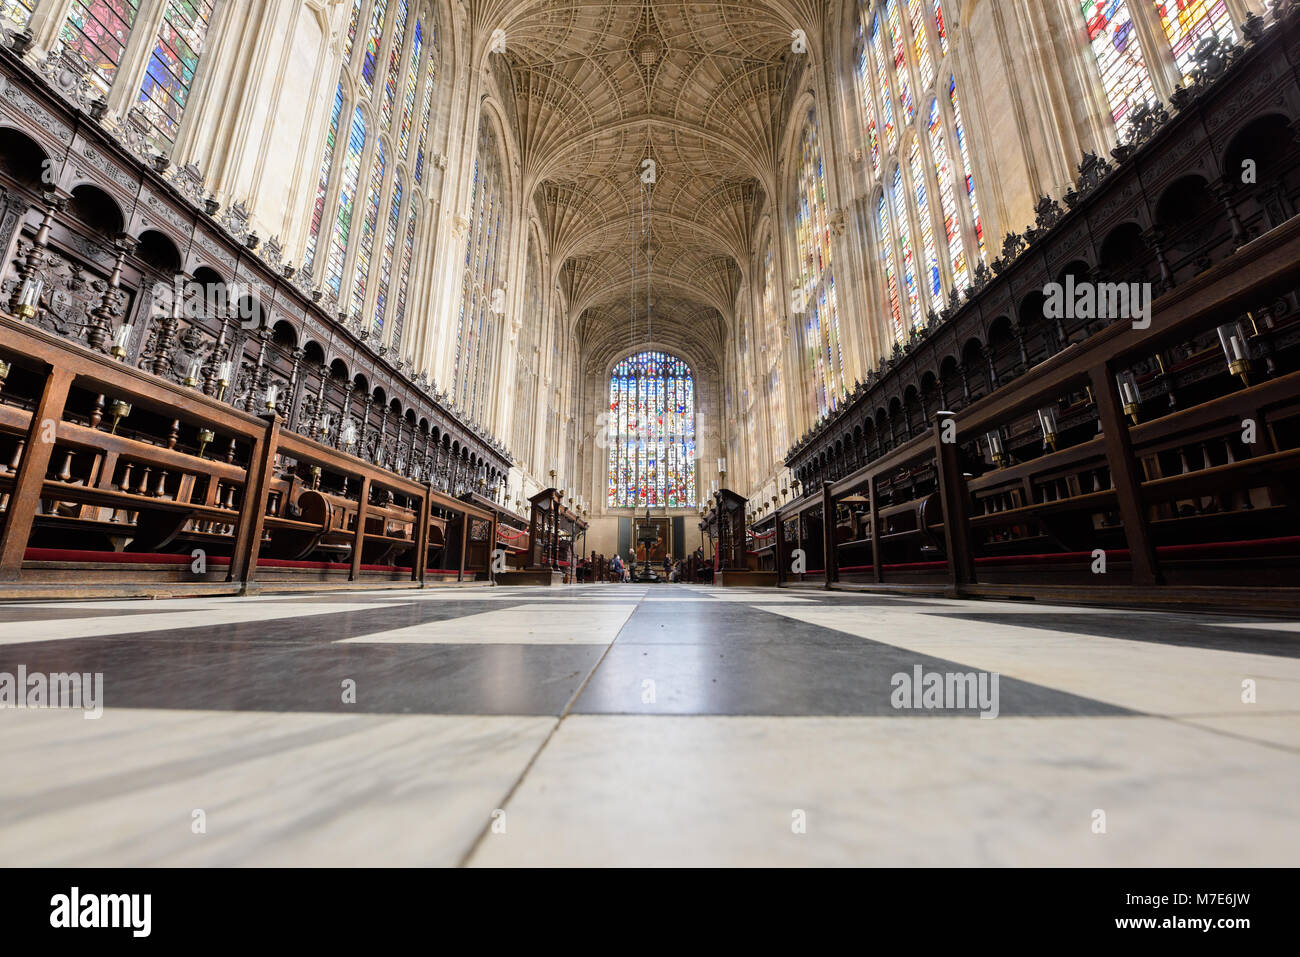 The choir with its floor, stained glass windows, and fan ceiling in the chapel at King's college, university of Stock Photo